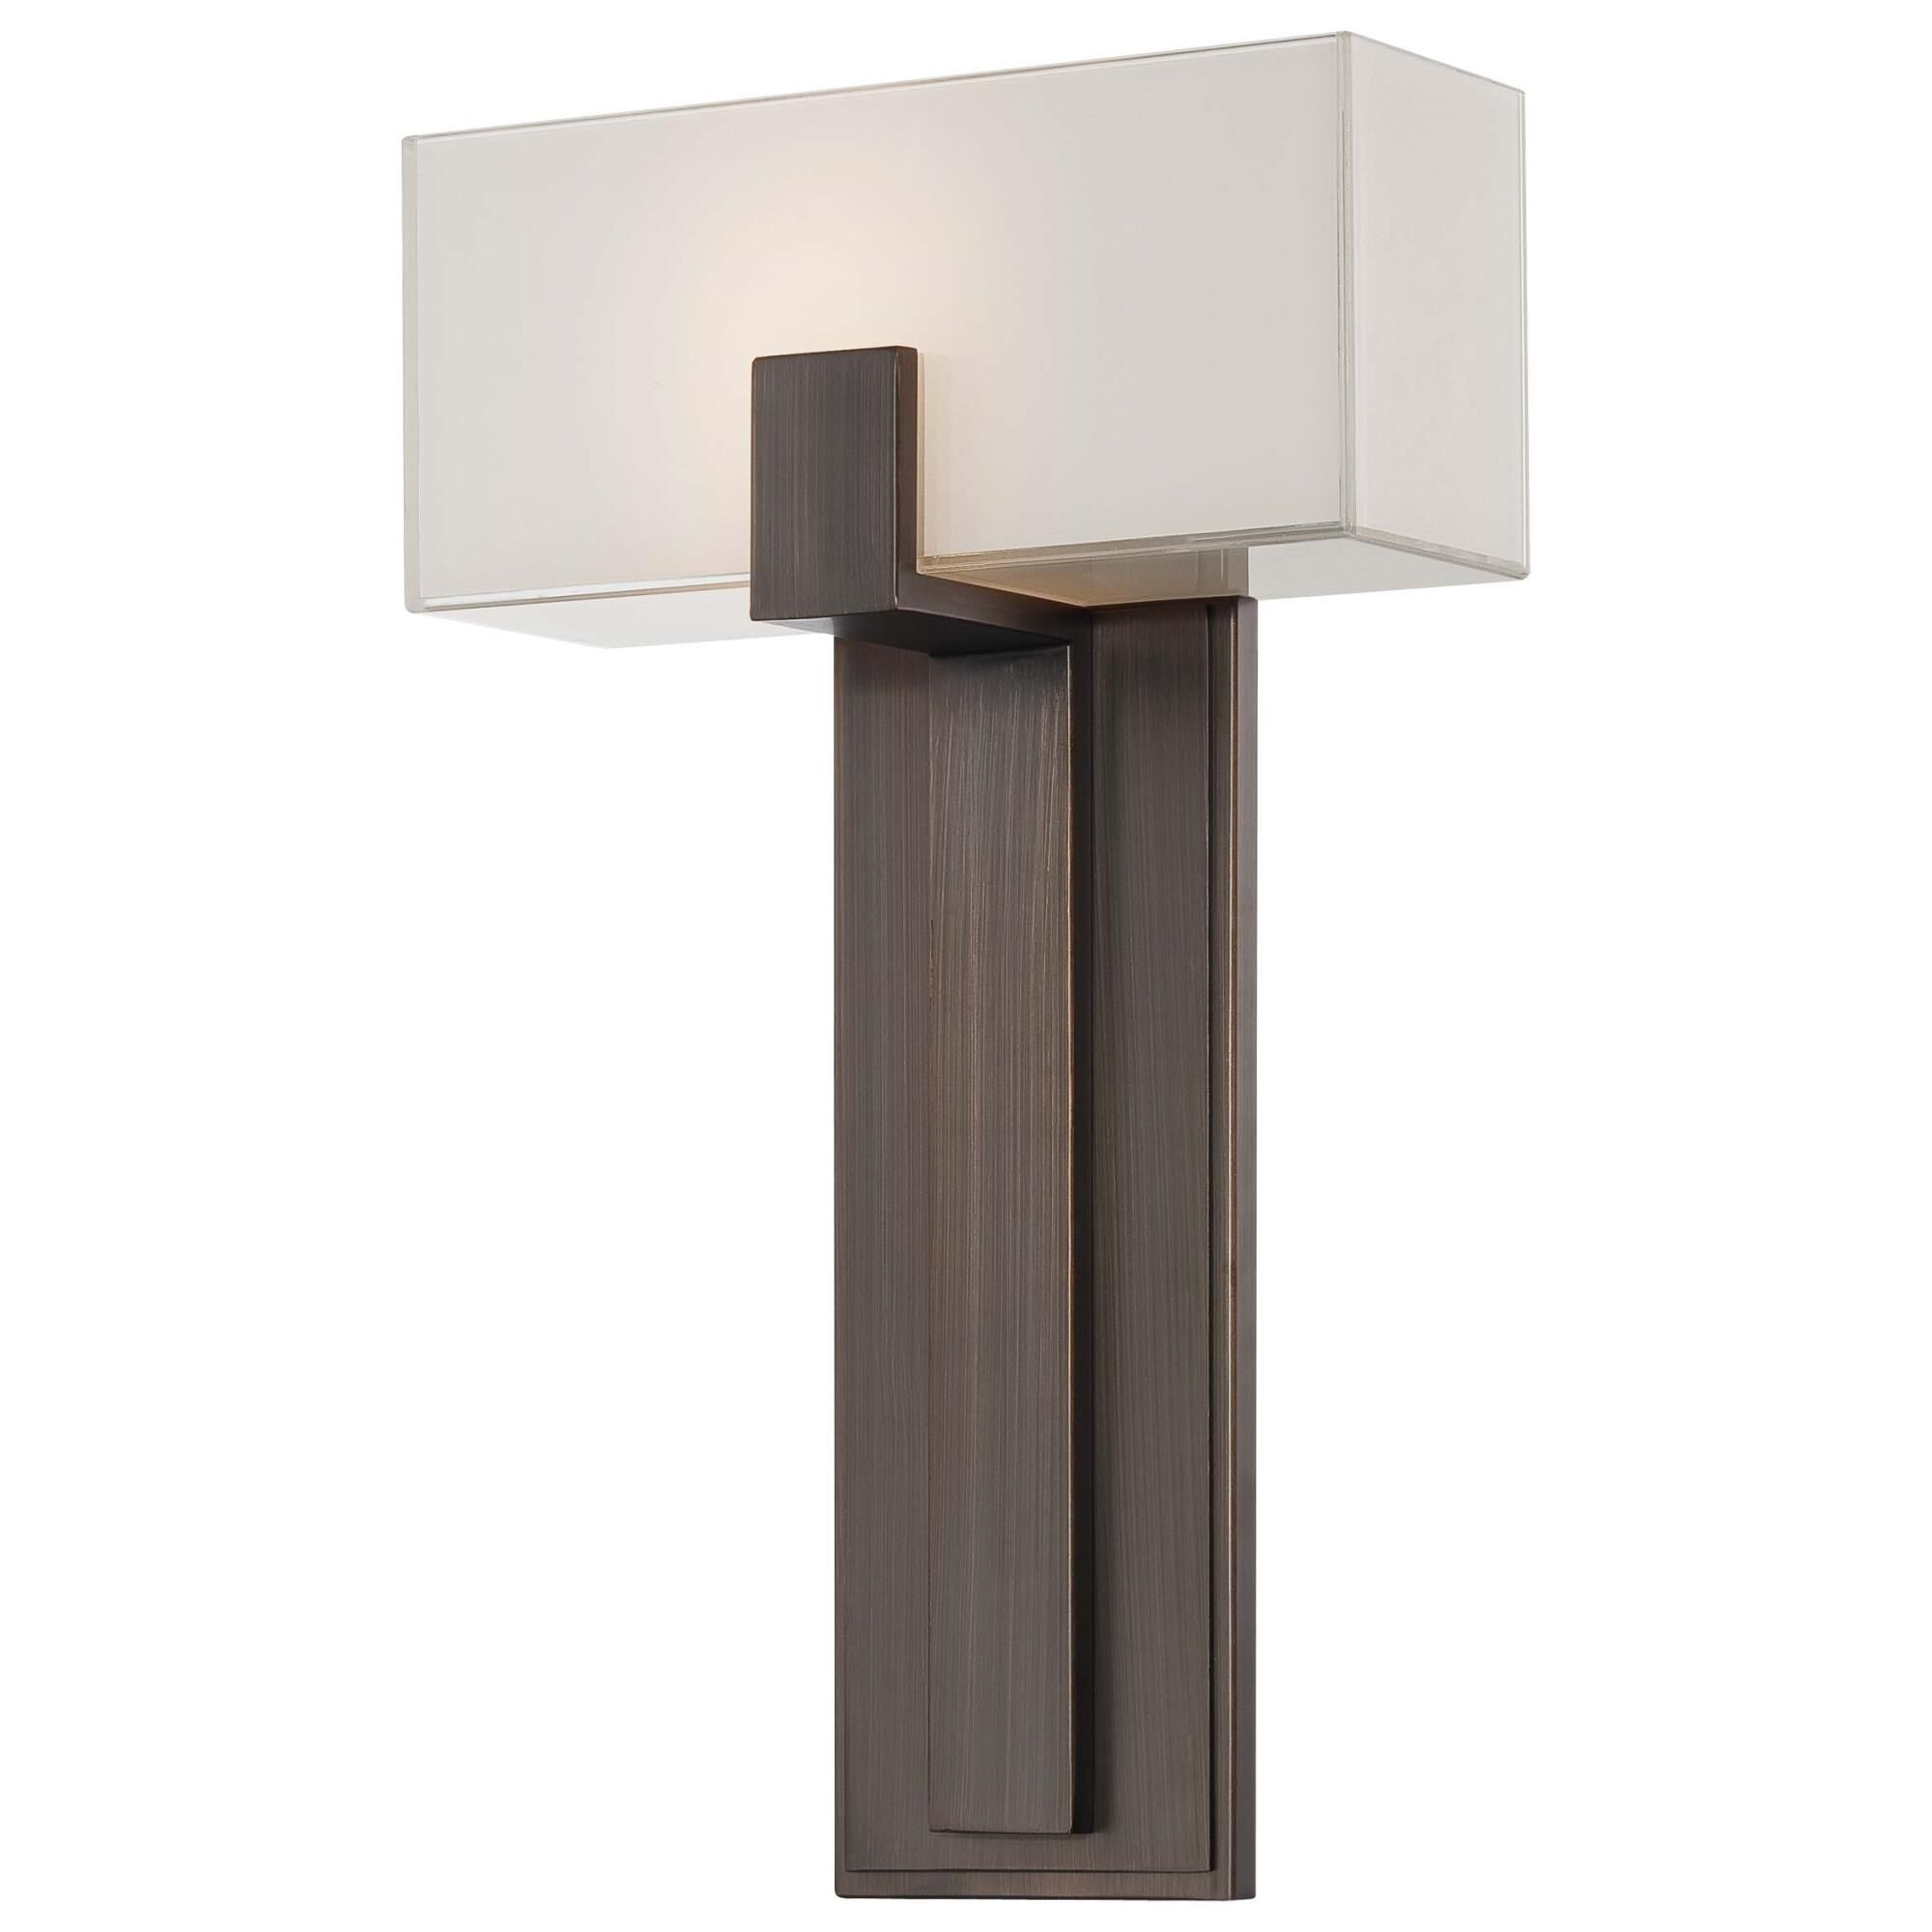 Kovacs 16 Inch Wall Sconce - P1704-647 - Modern Contemporary